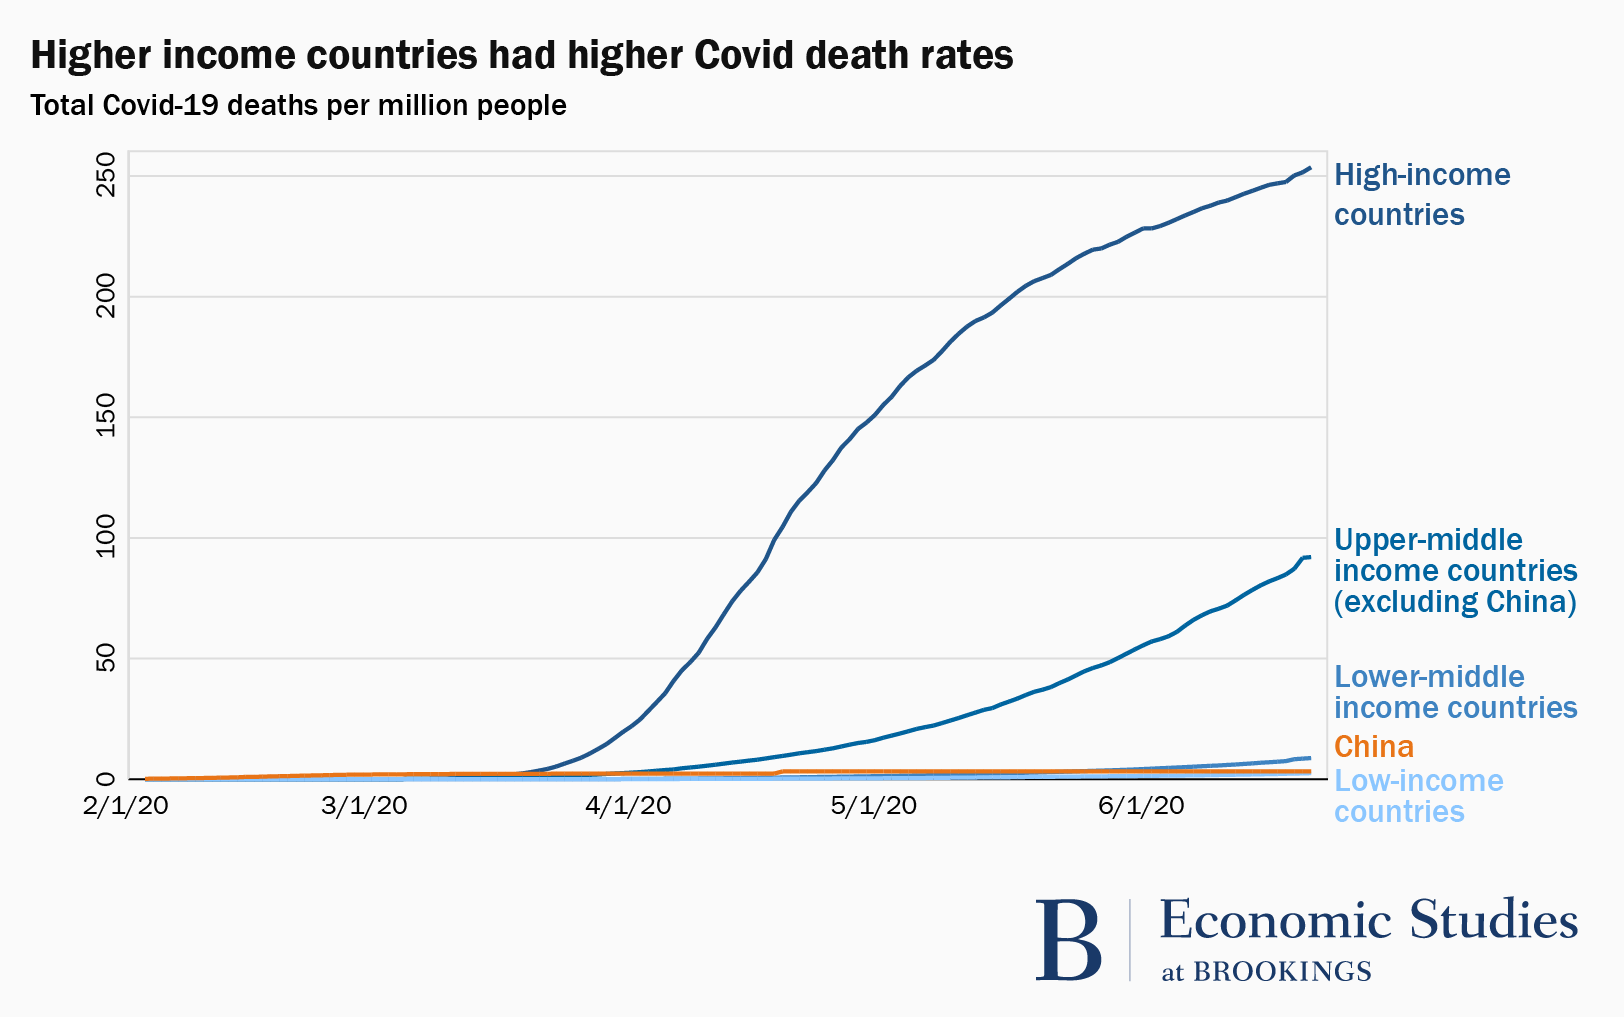 A line graph demonstrating that higher income countries had higher Covid death rates.